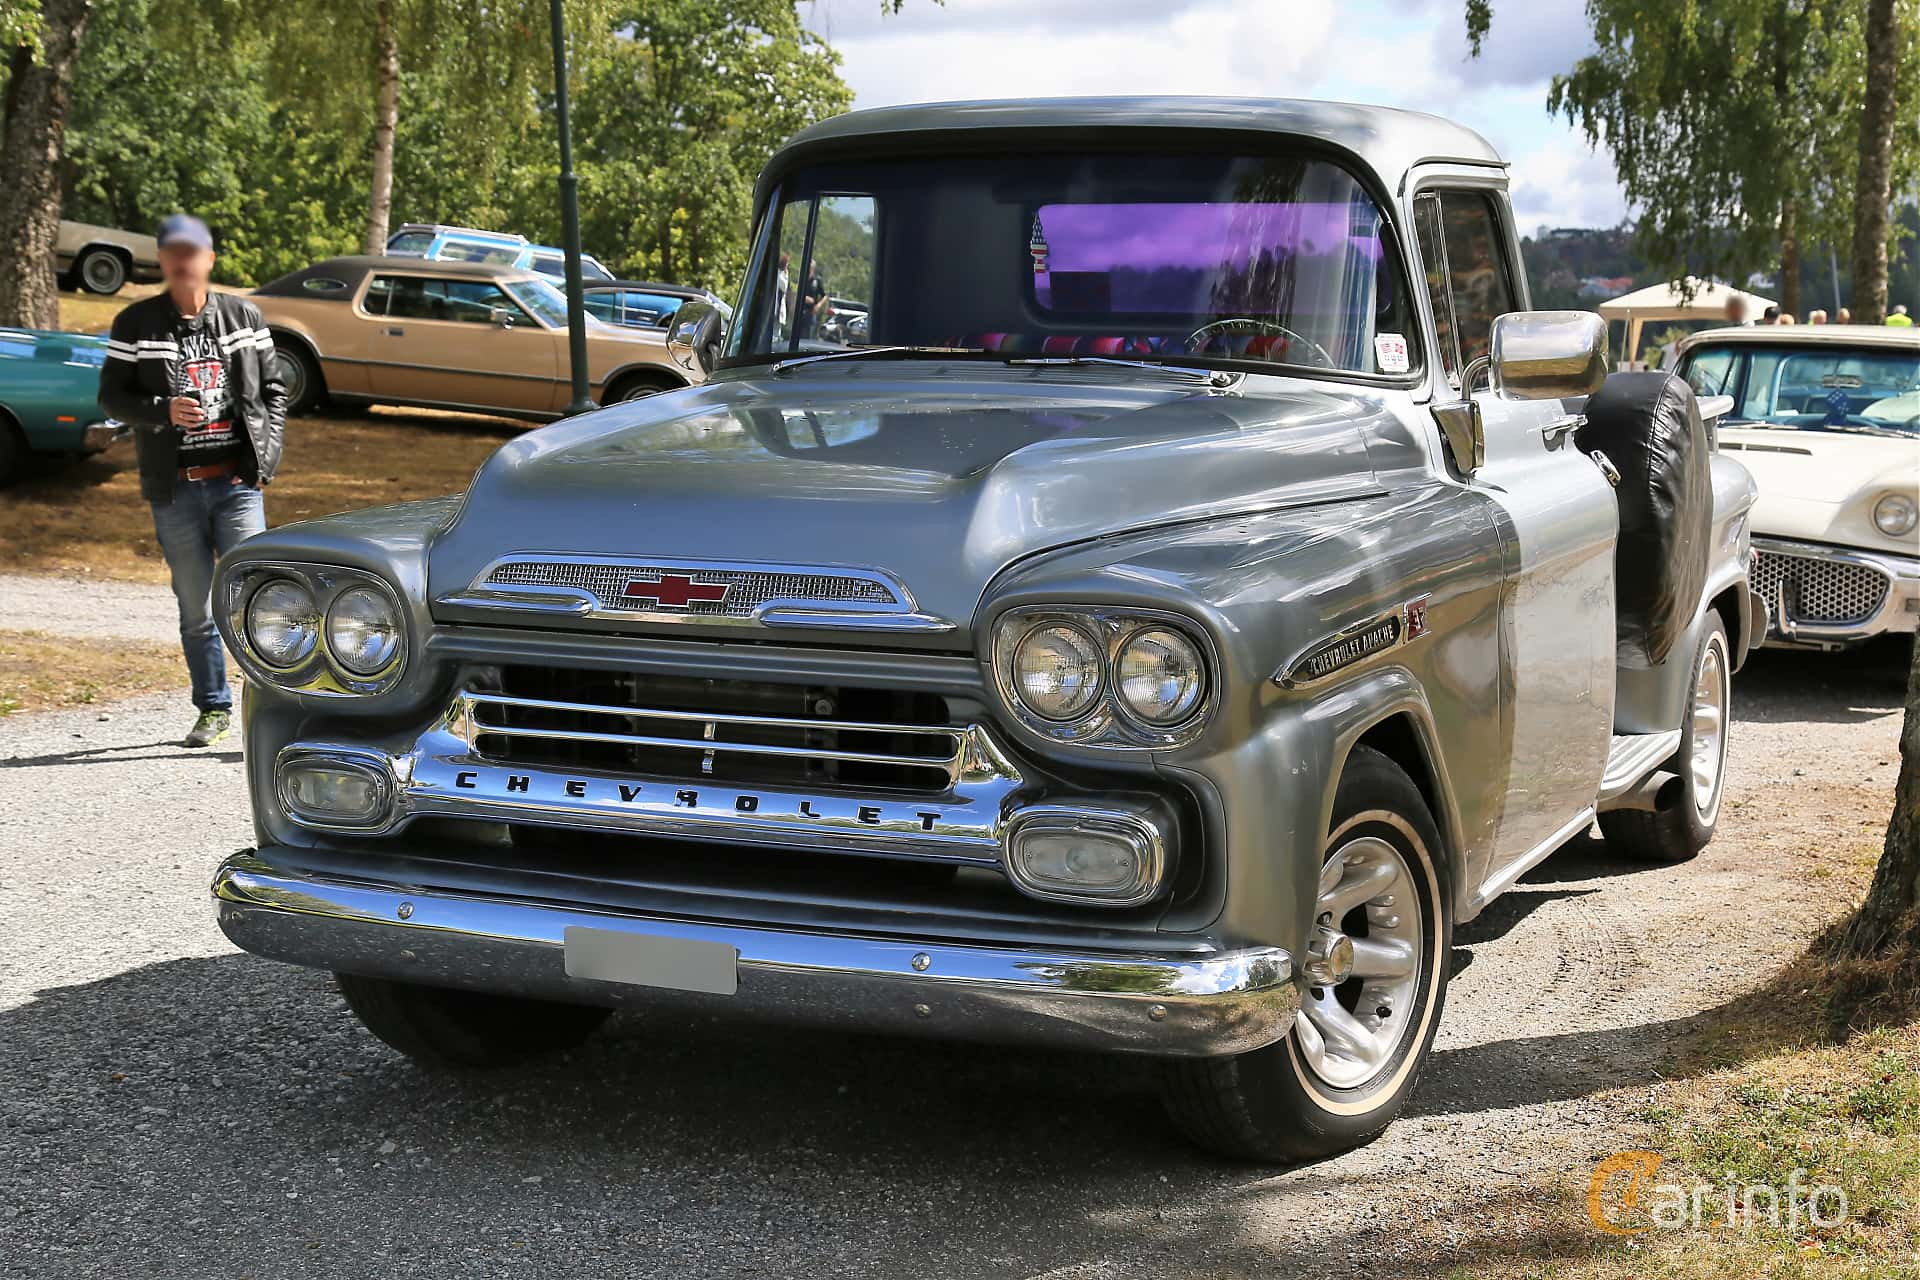 Chevrolet Apache 31/32 3.9 137hp, 1959